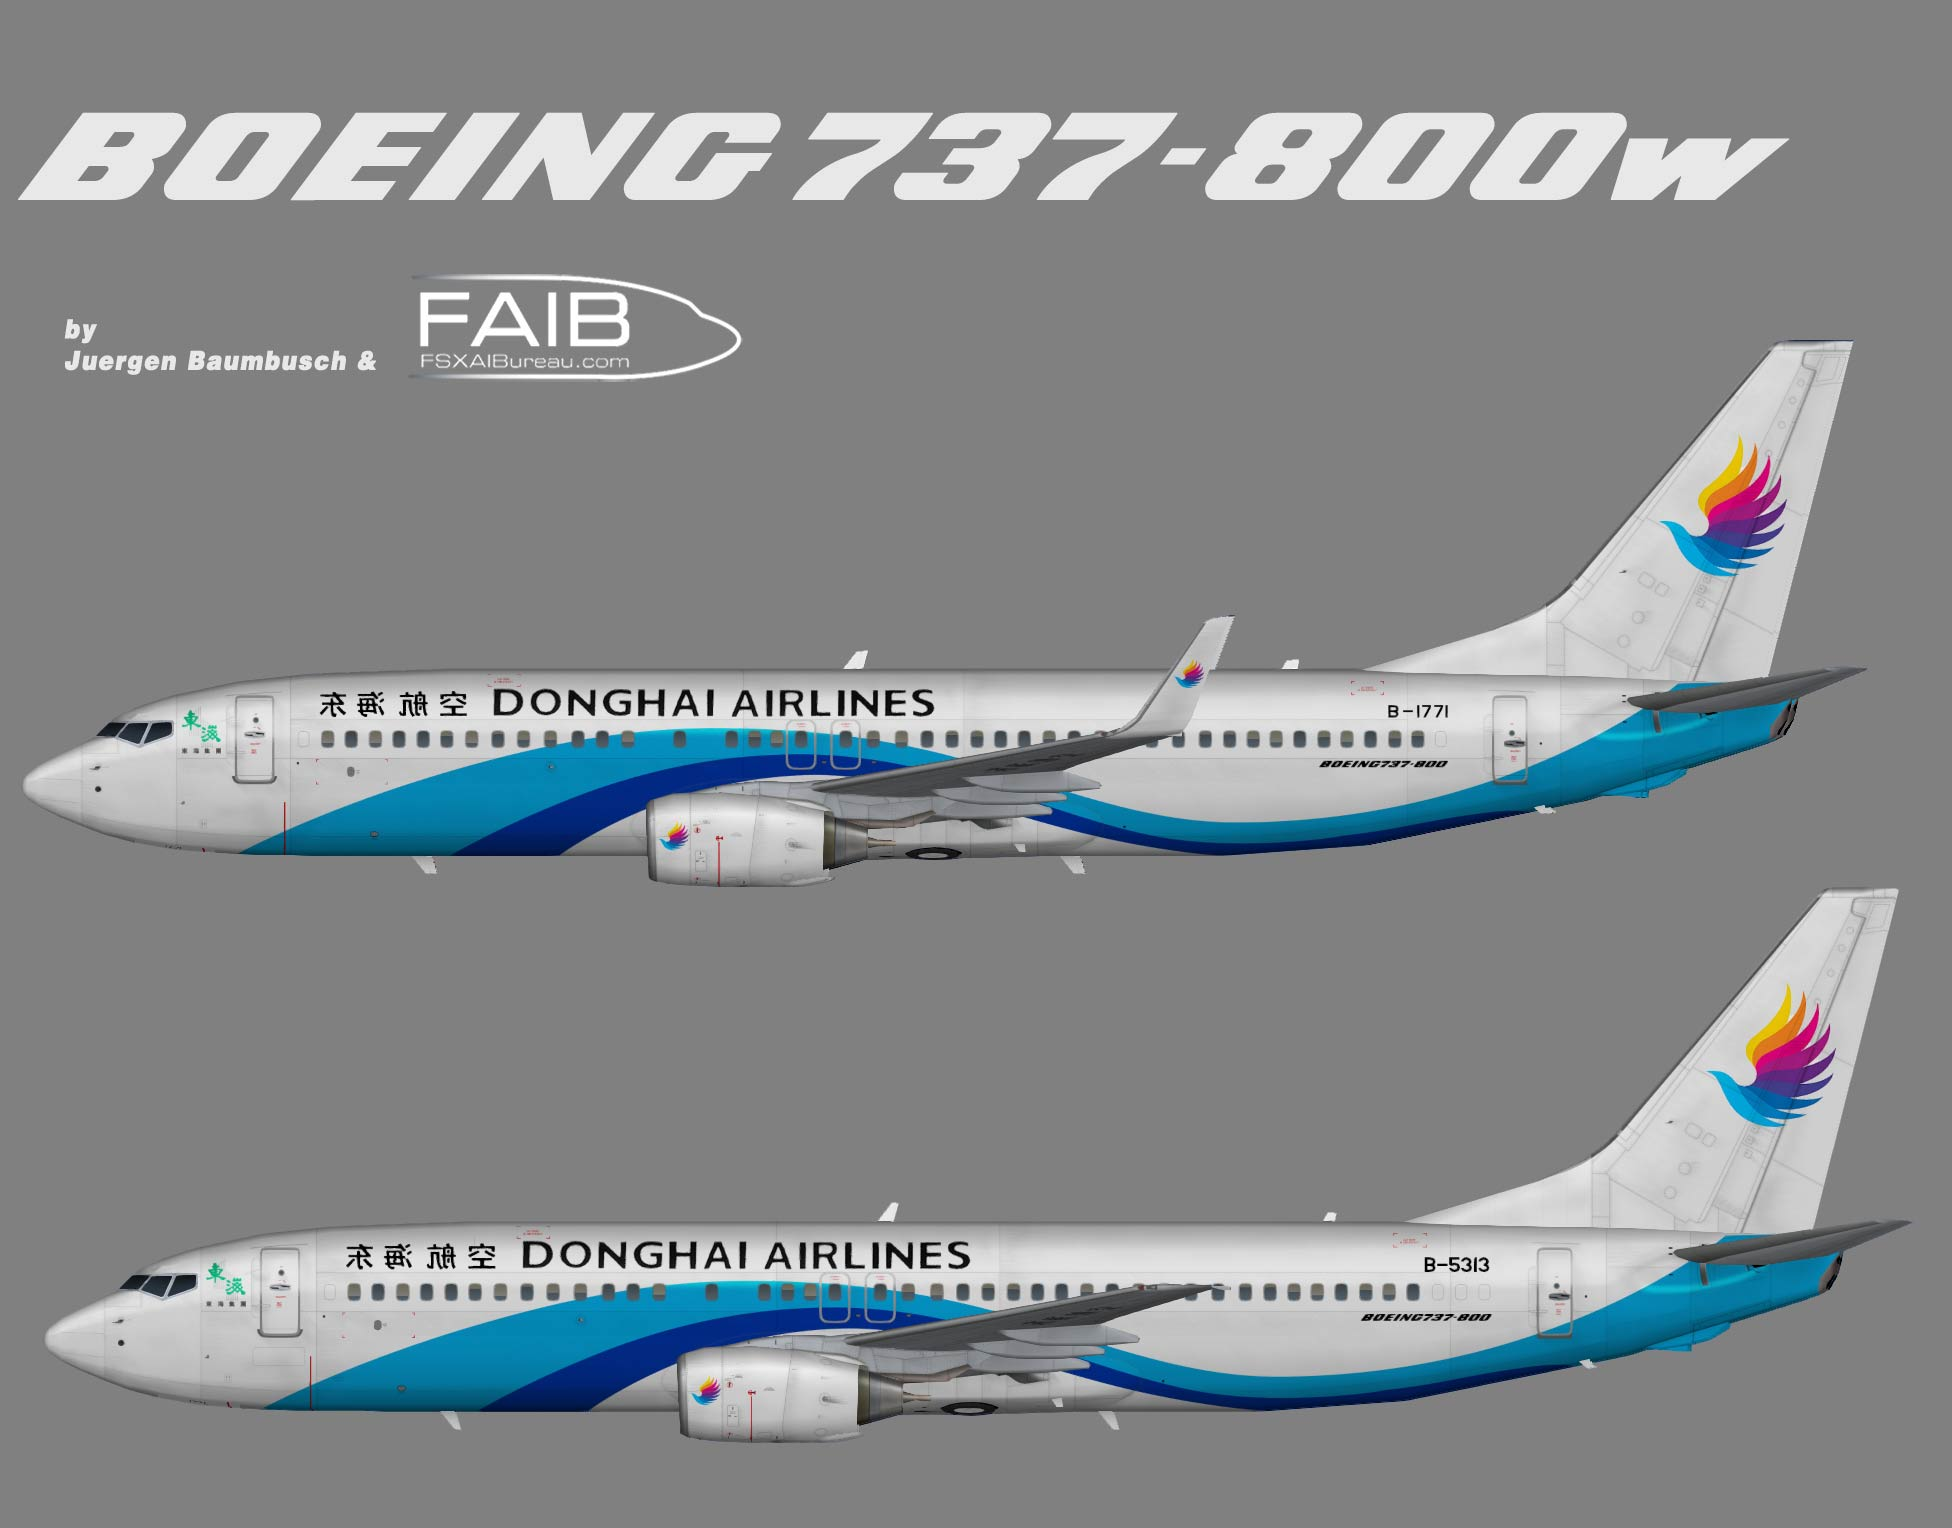 Donghai Airlines Boeing 737-800q